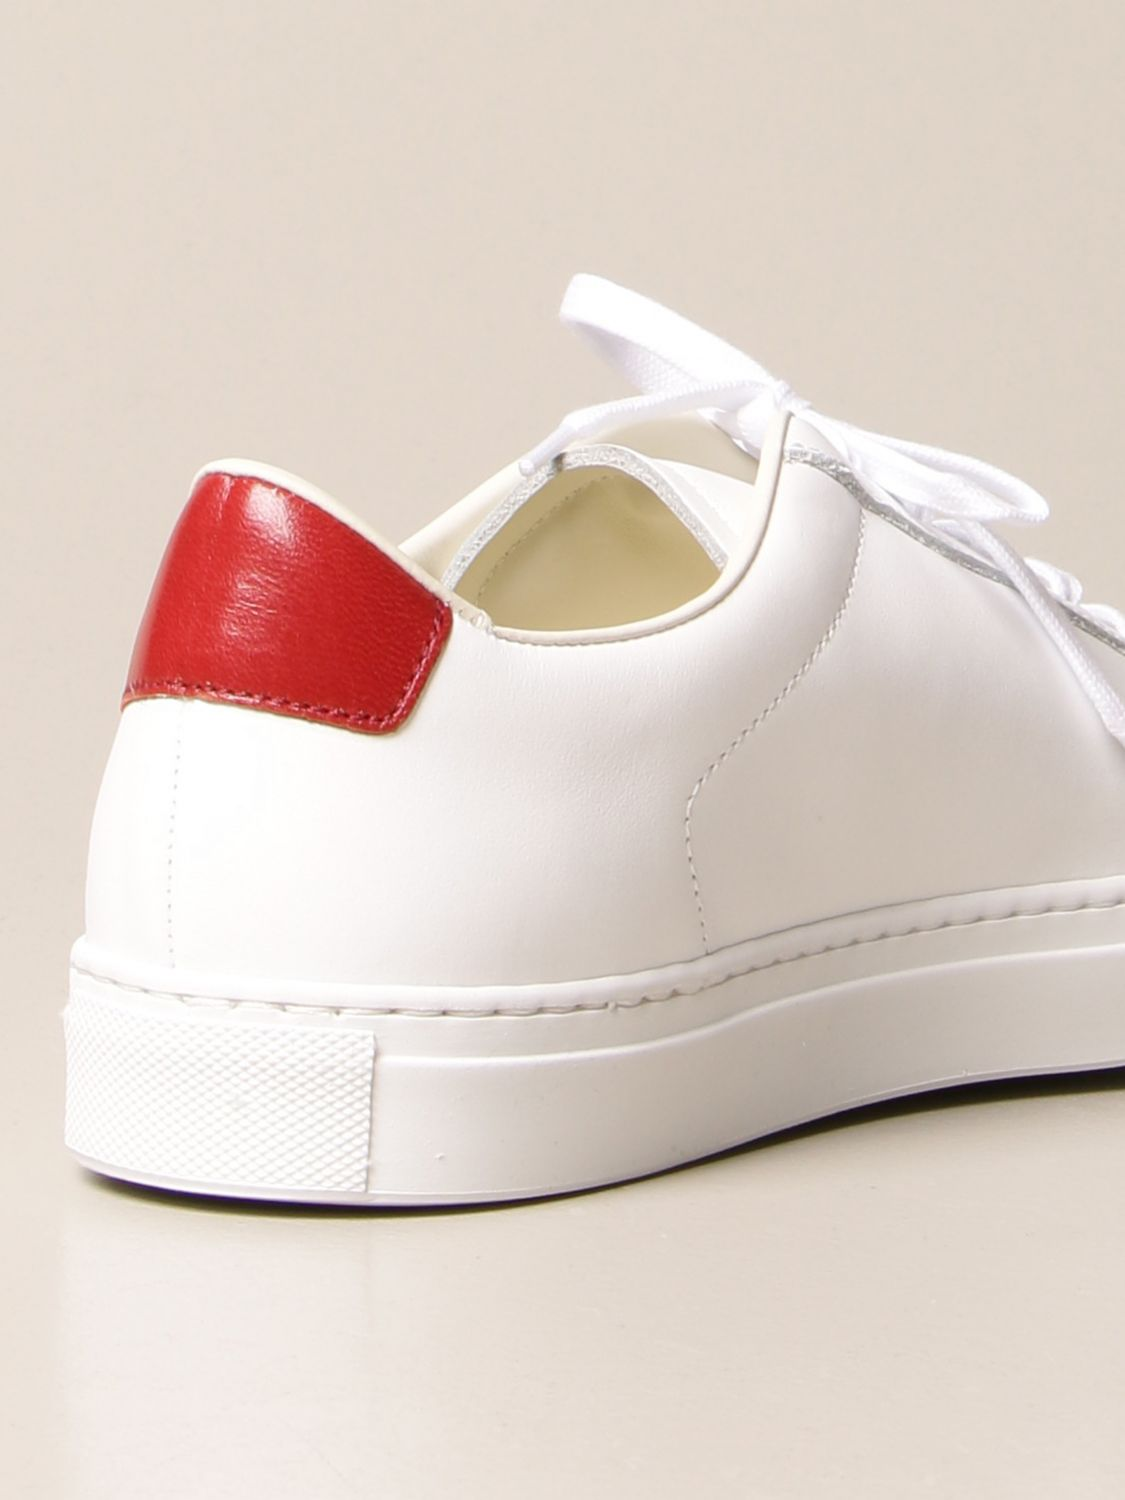 Sneakers Common Projects: Sneakers herren Common Projects weiss 2 3